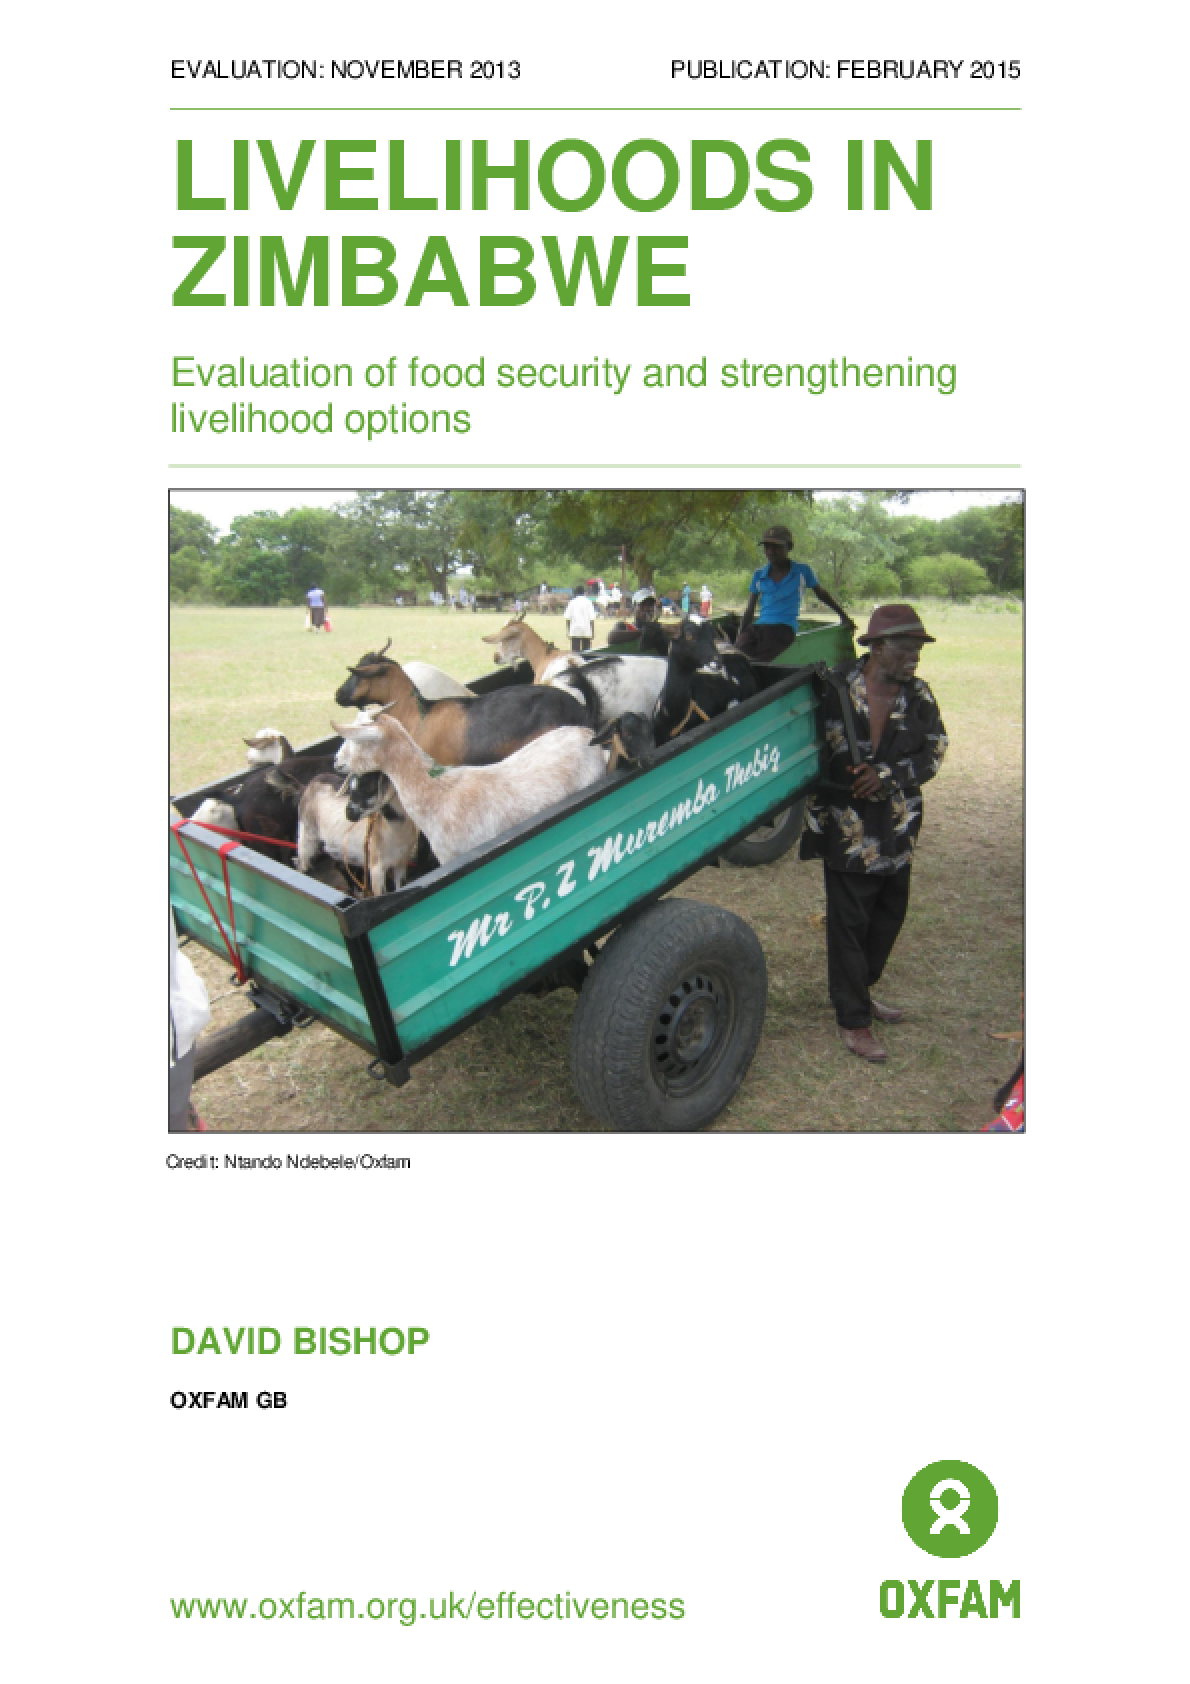 Livelihoods in Zimbabwe: Evaluation of food security and strengthening livelihood options